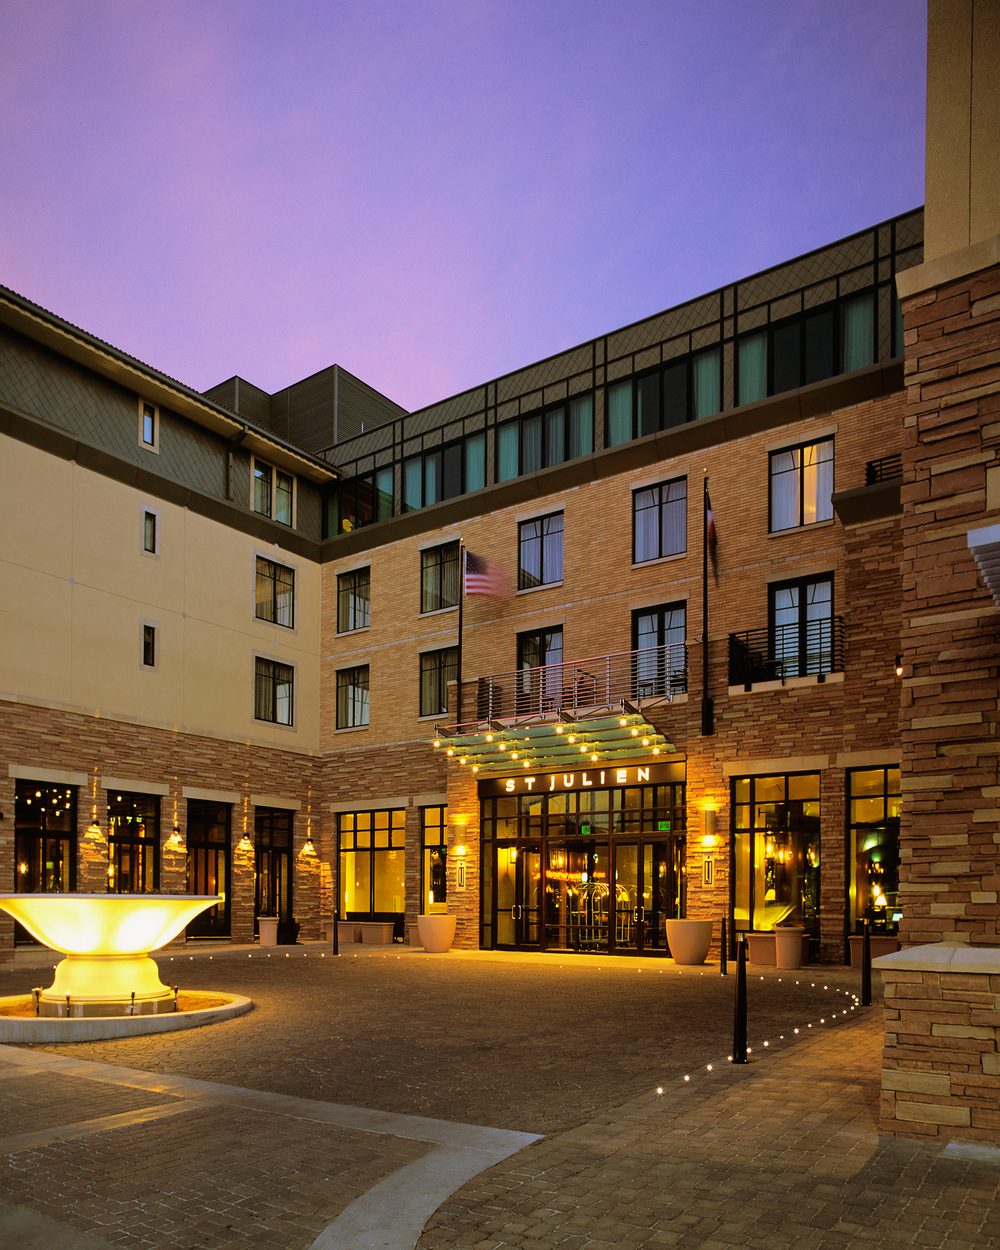 st_julien_hotel_boulder_colorado_sunset_entry.jpg